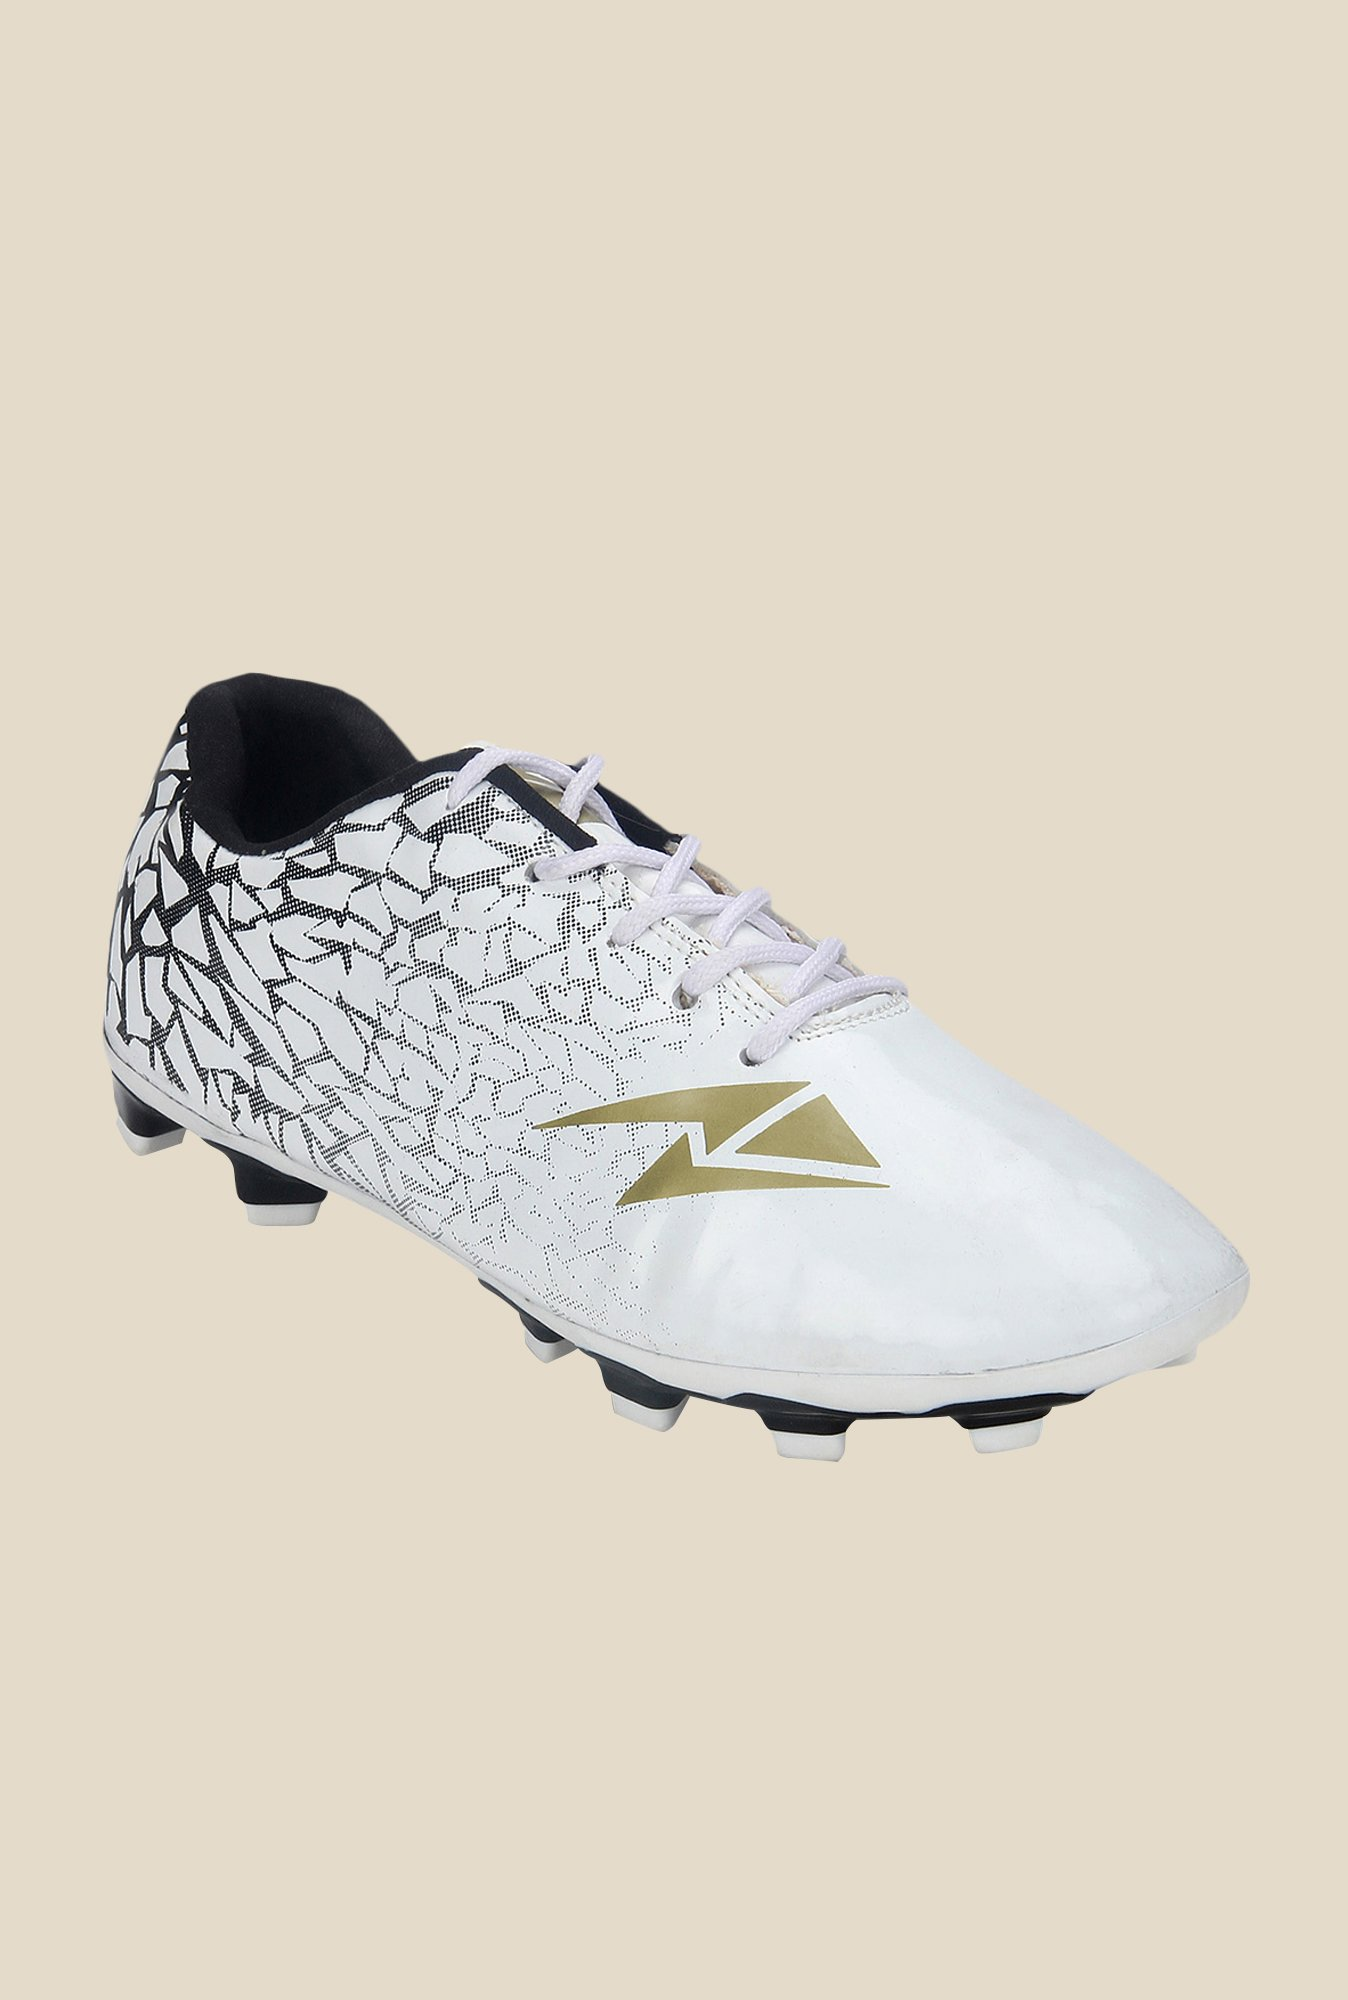 Yepme White & Black Football Shoes